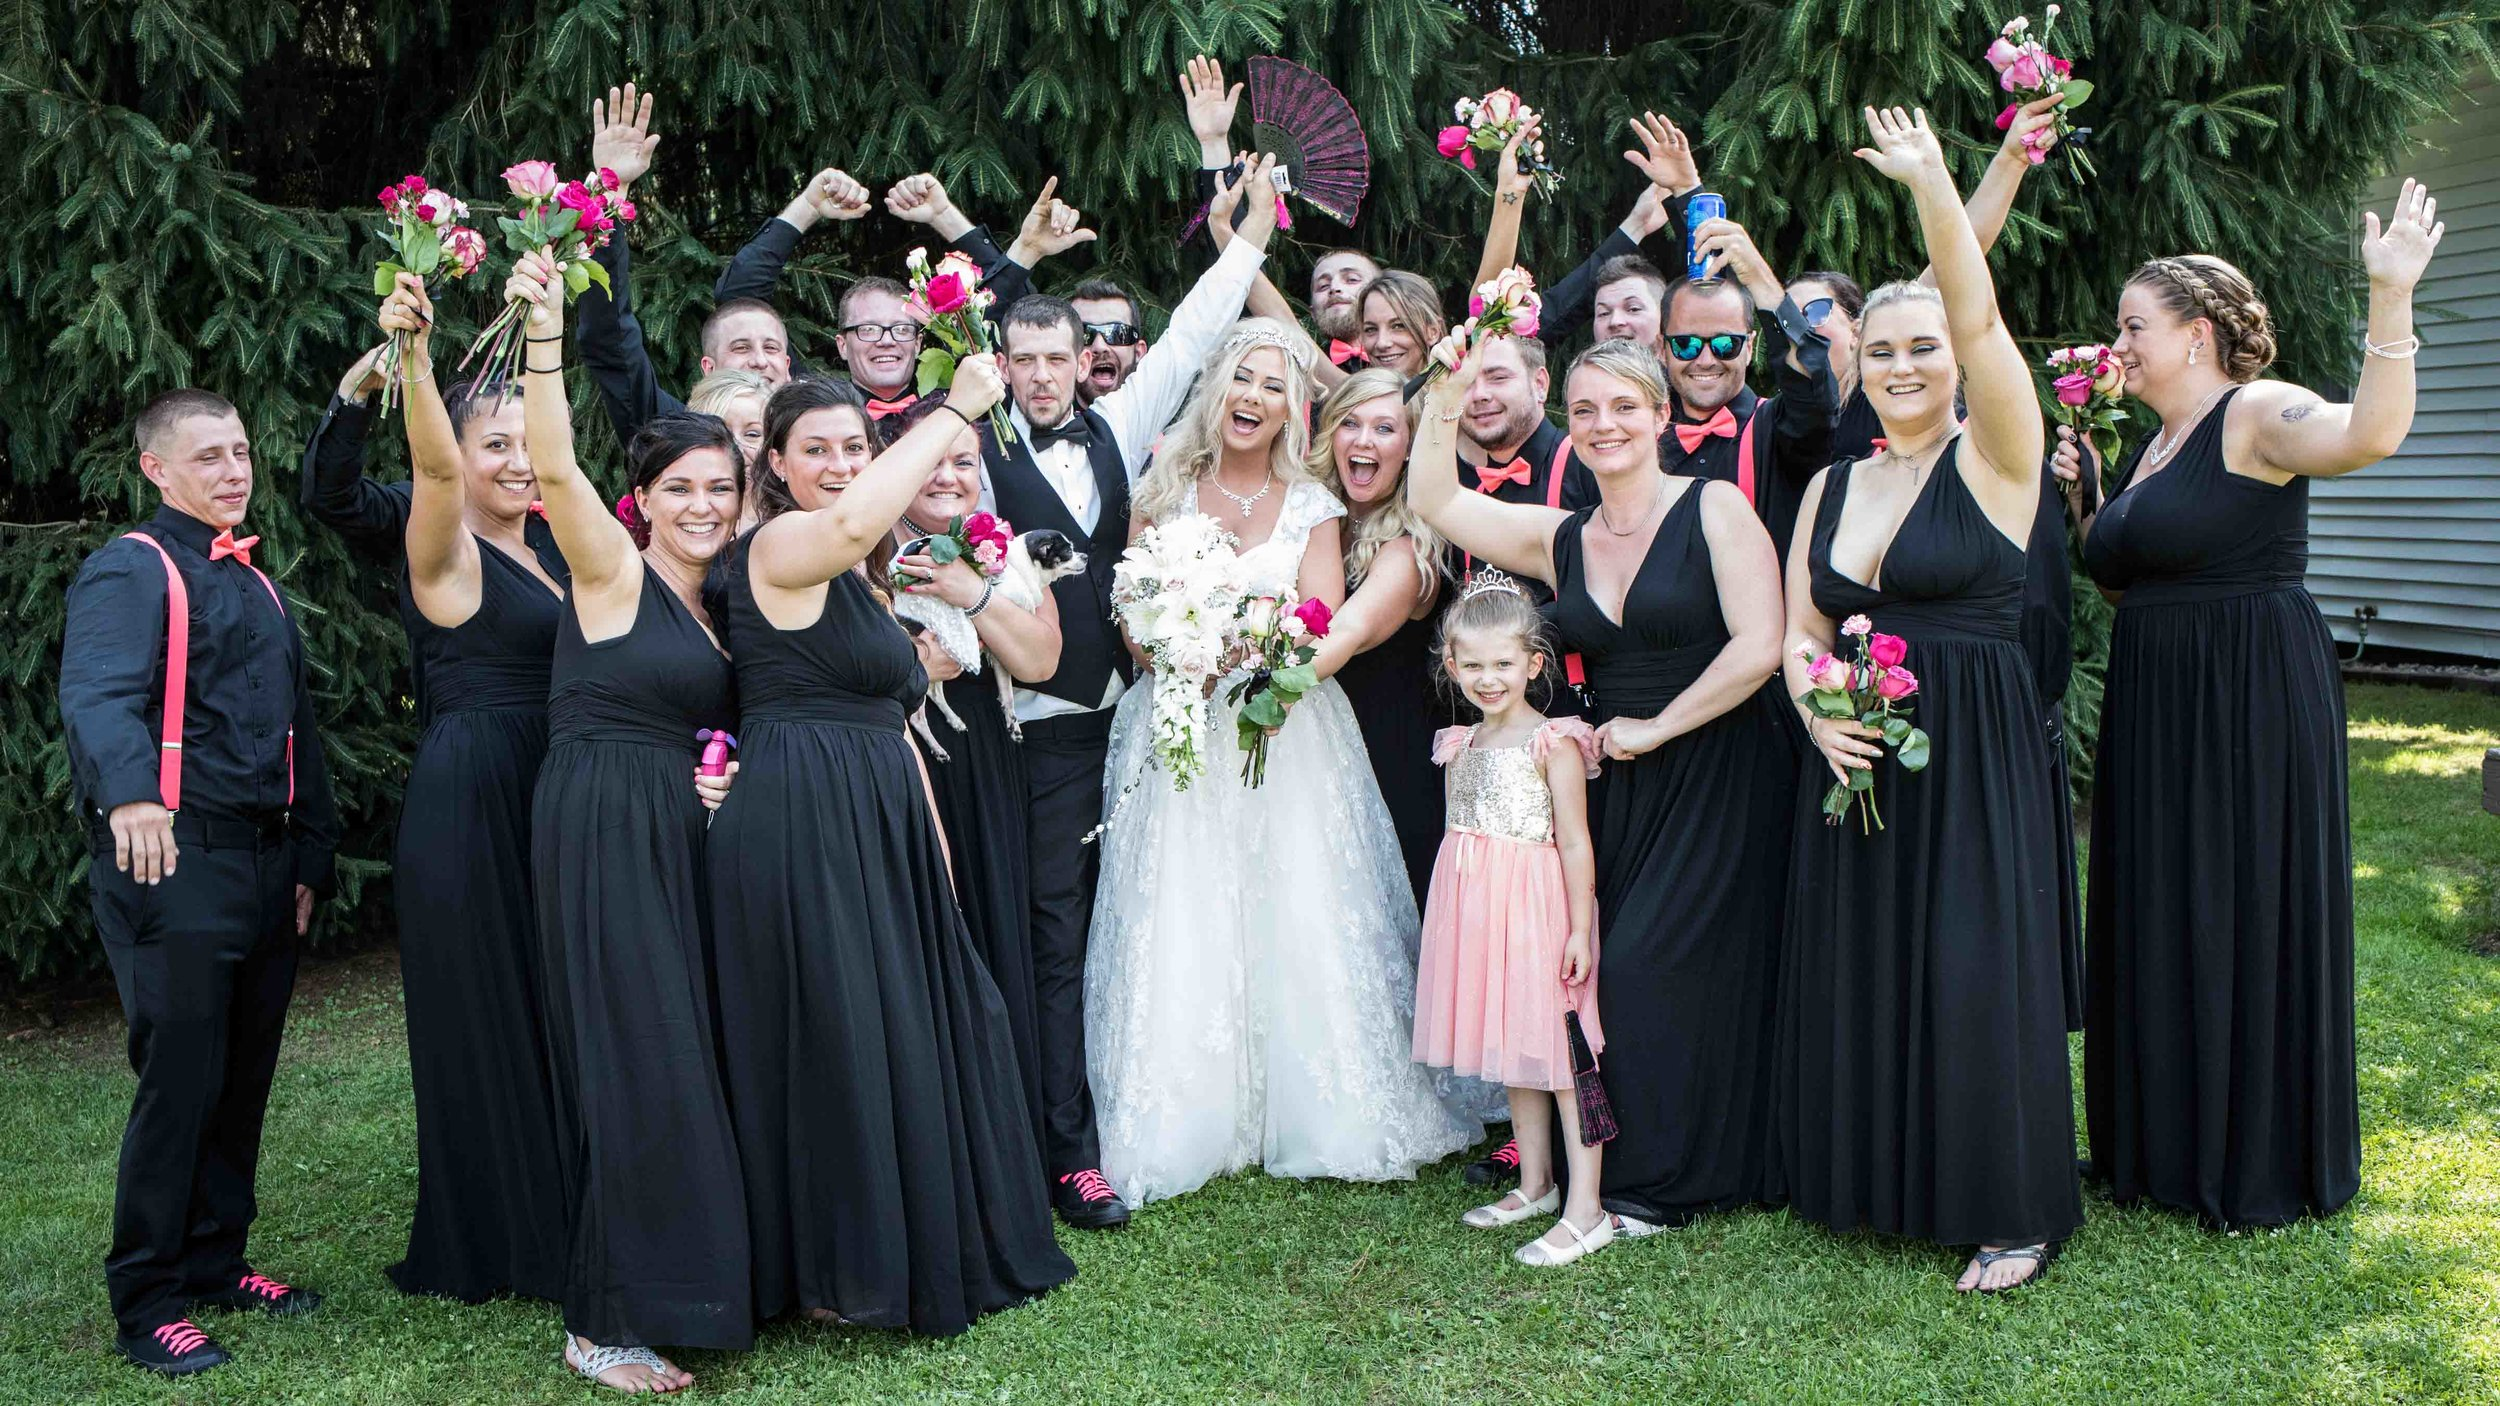 a very large wedding party celebrating with their hands in the air.  congratulating the newly weds